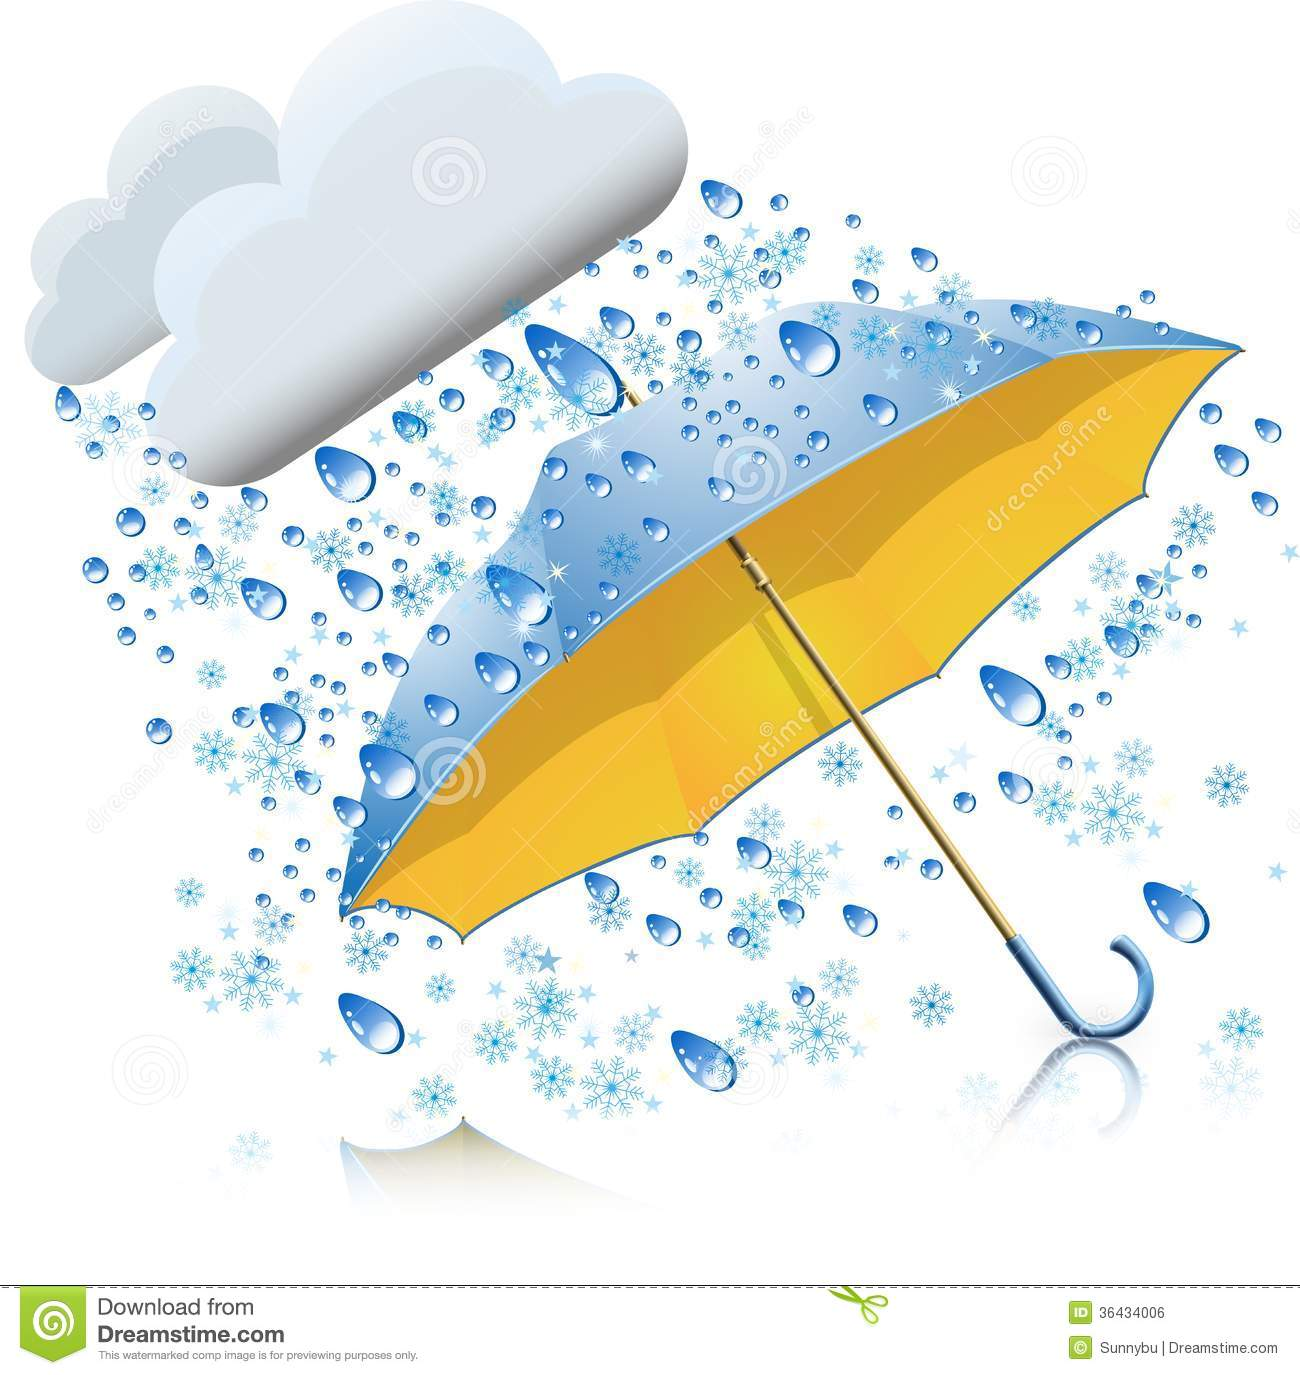 Snow With Rain And Umbrella Royalty Free Stock Image   Image  36434006